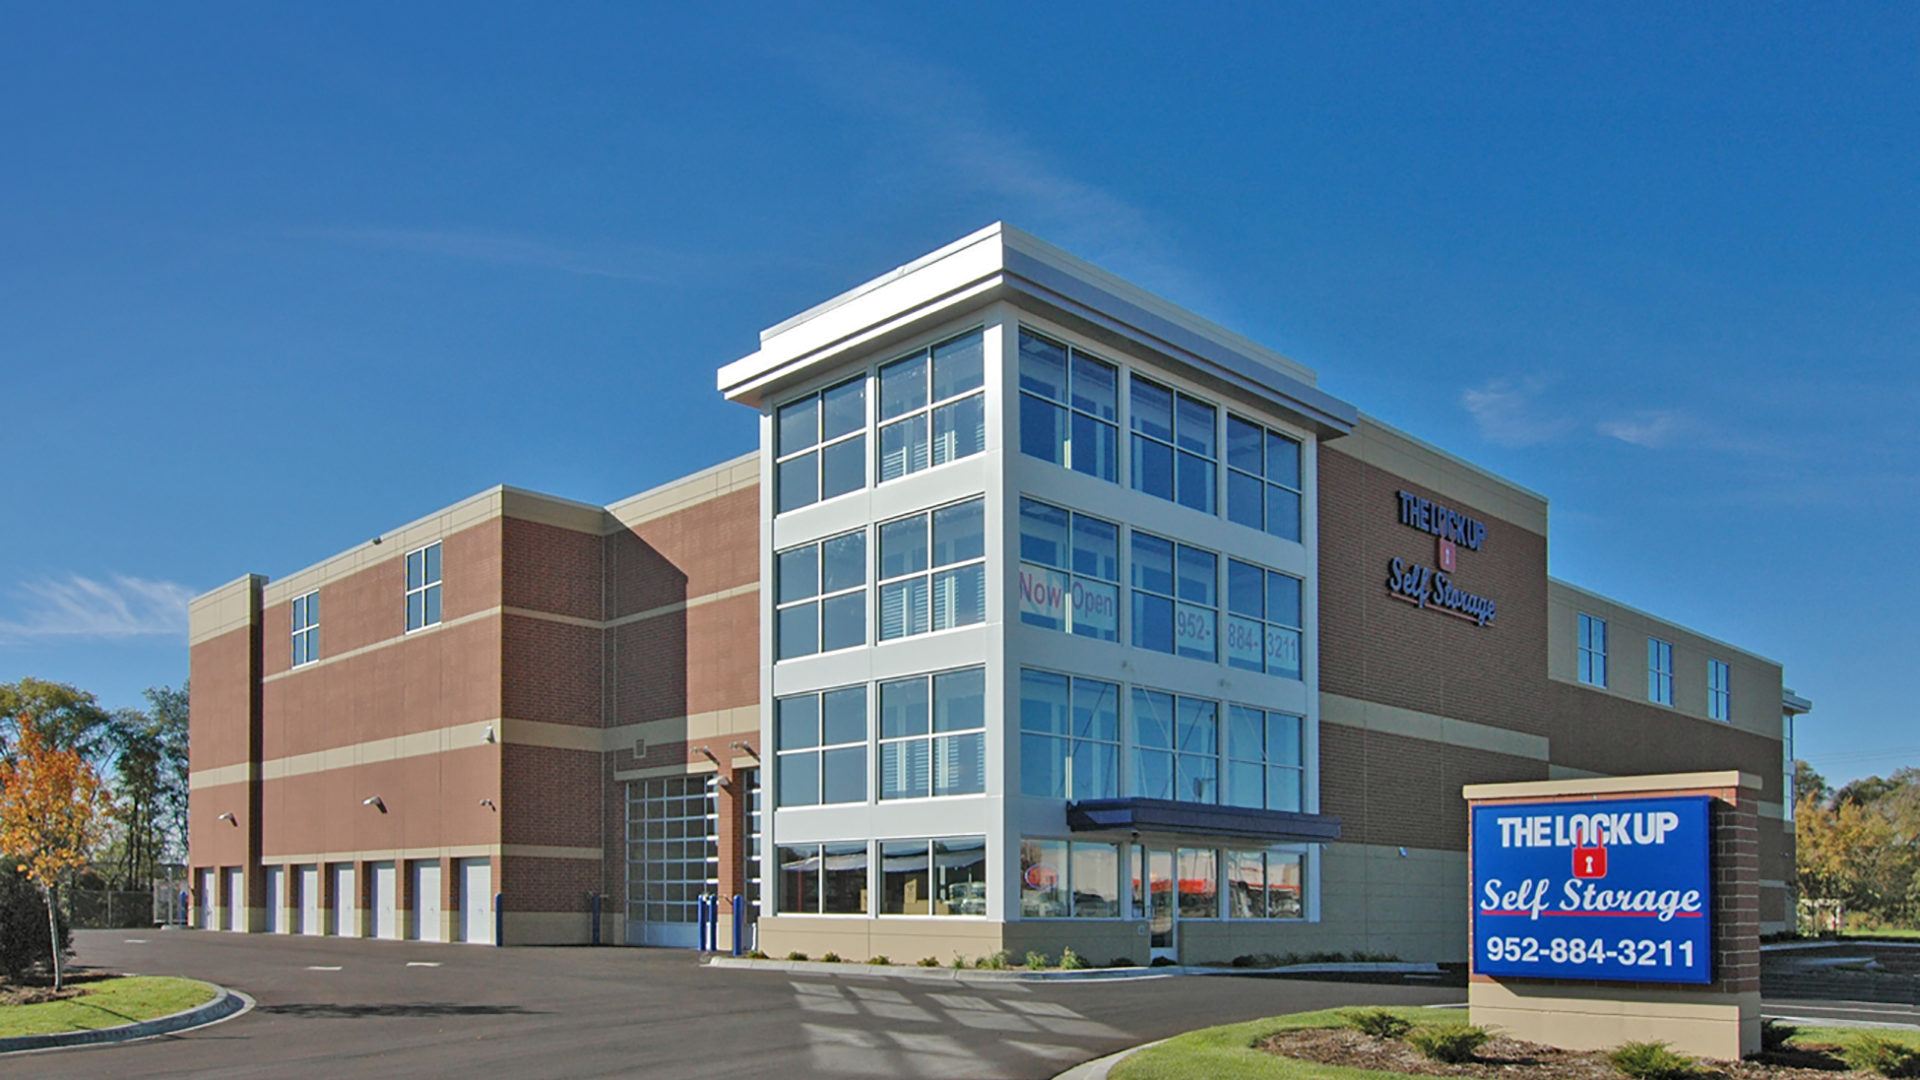 The Lock Up Self Storage Facility Kraus Anderson